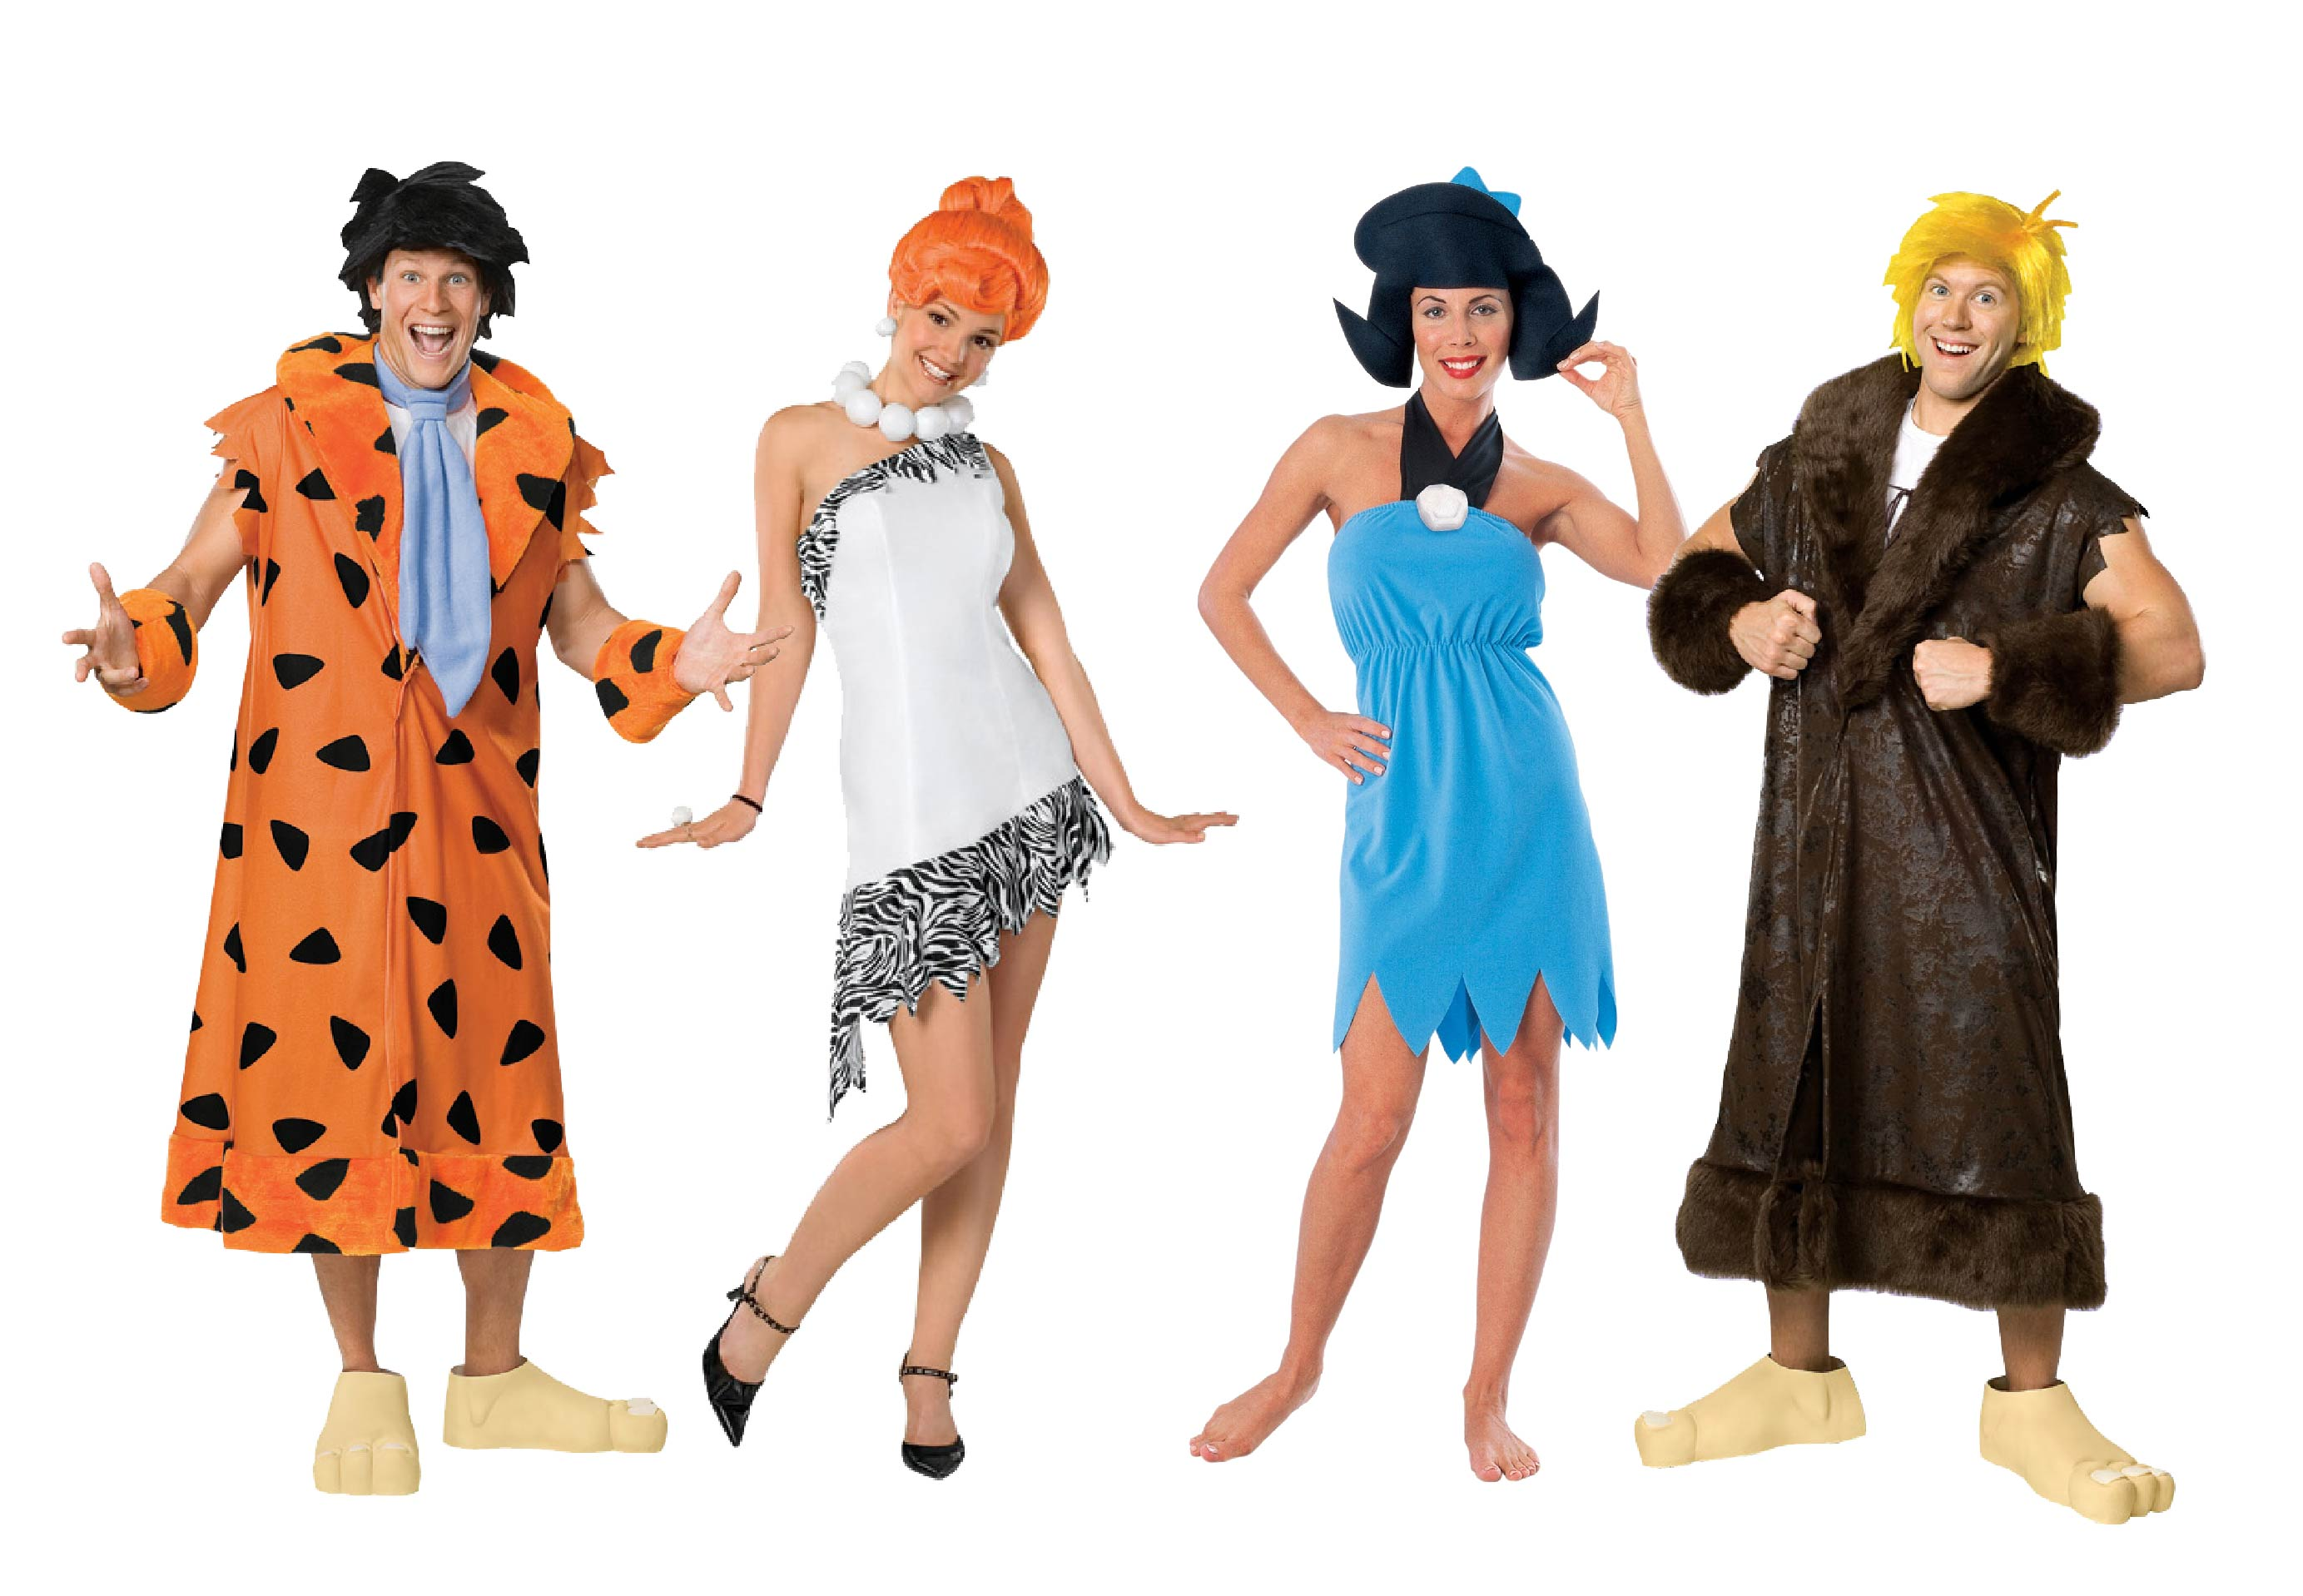 Men and womens wearing group Flintstones costumes including Fred, Wilma, Betty and Barney.